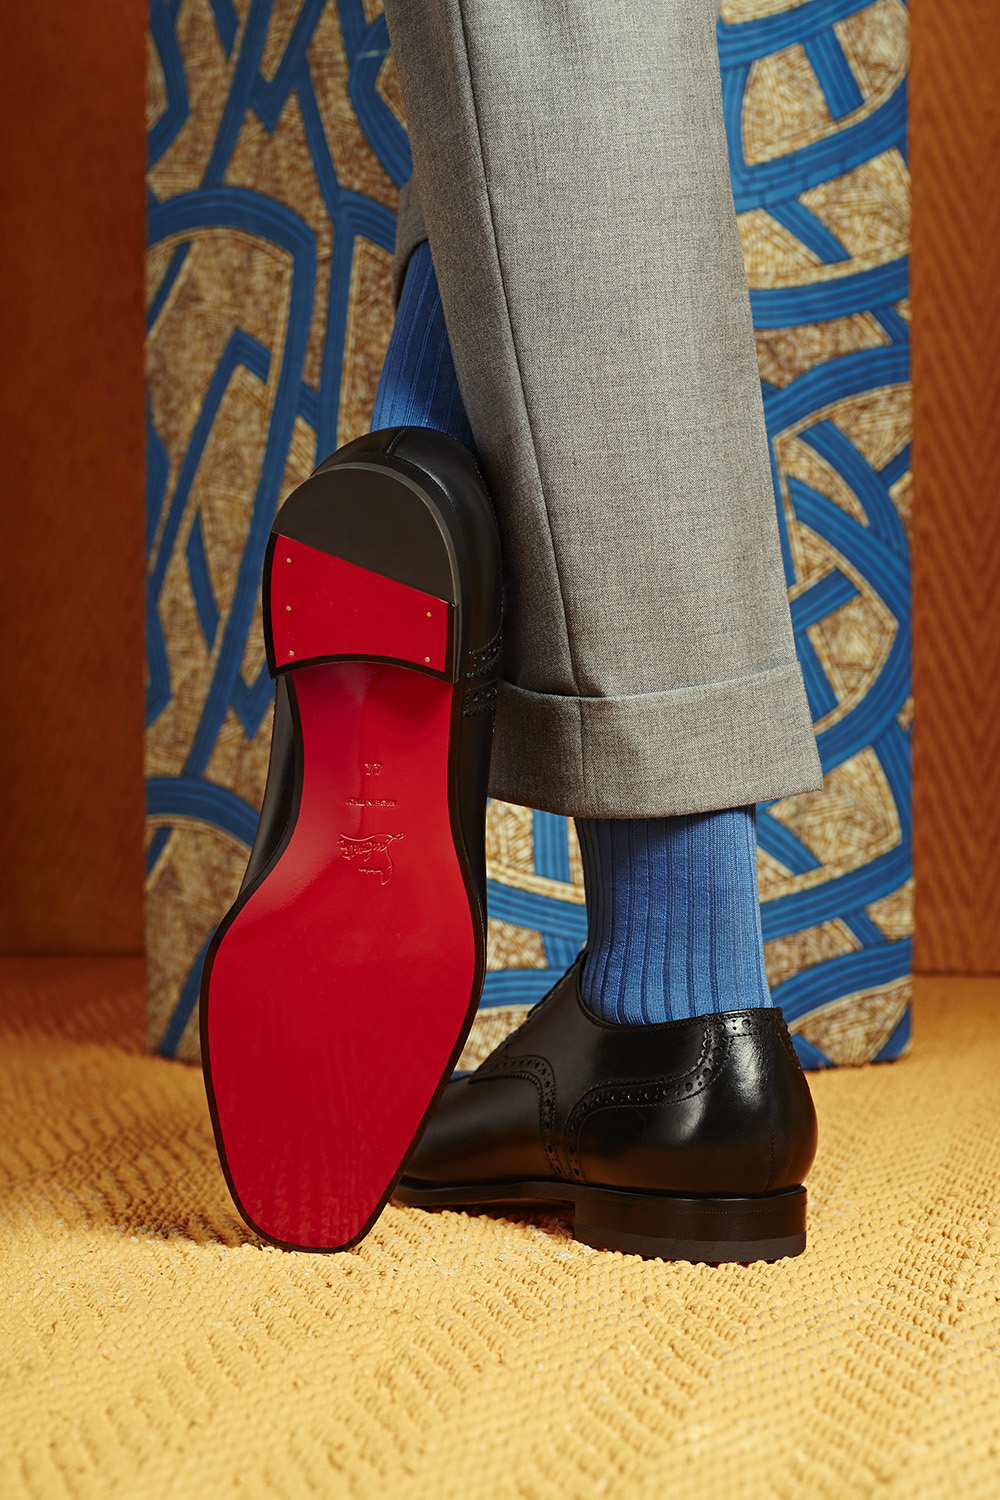 black louboutins - News - Christian Louboutin Online - The New Class of Classics ...